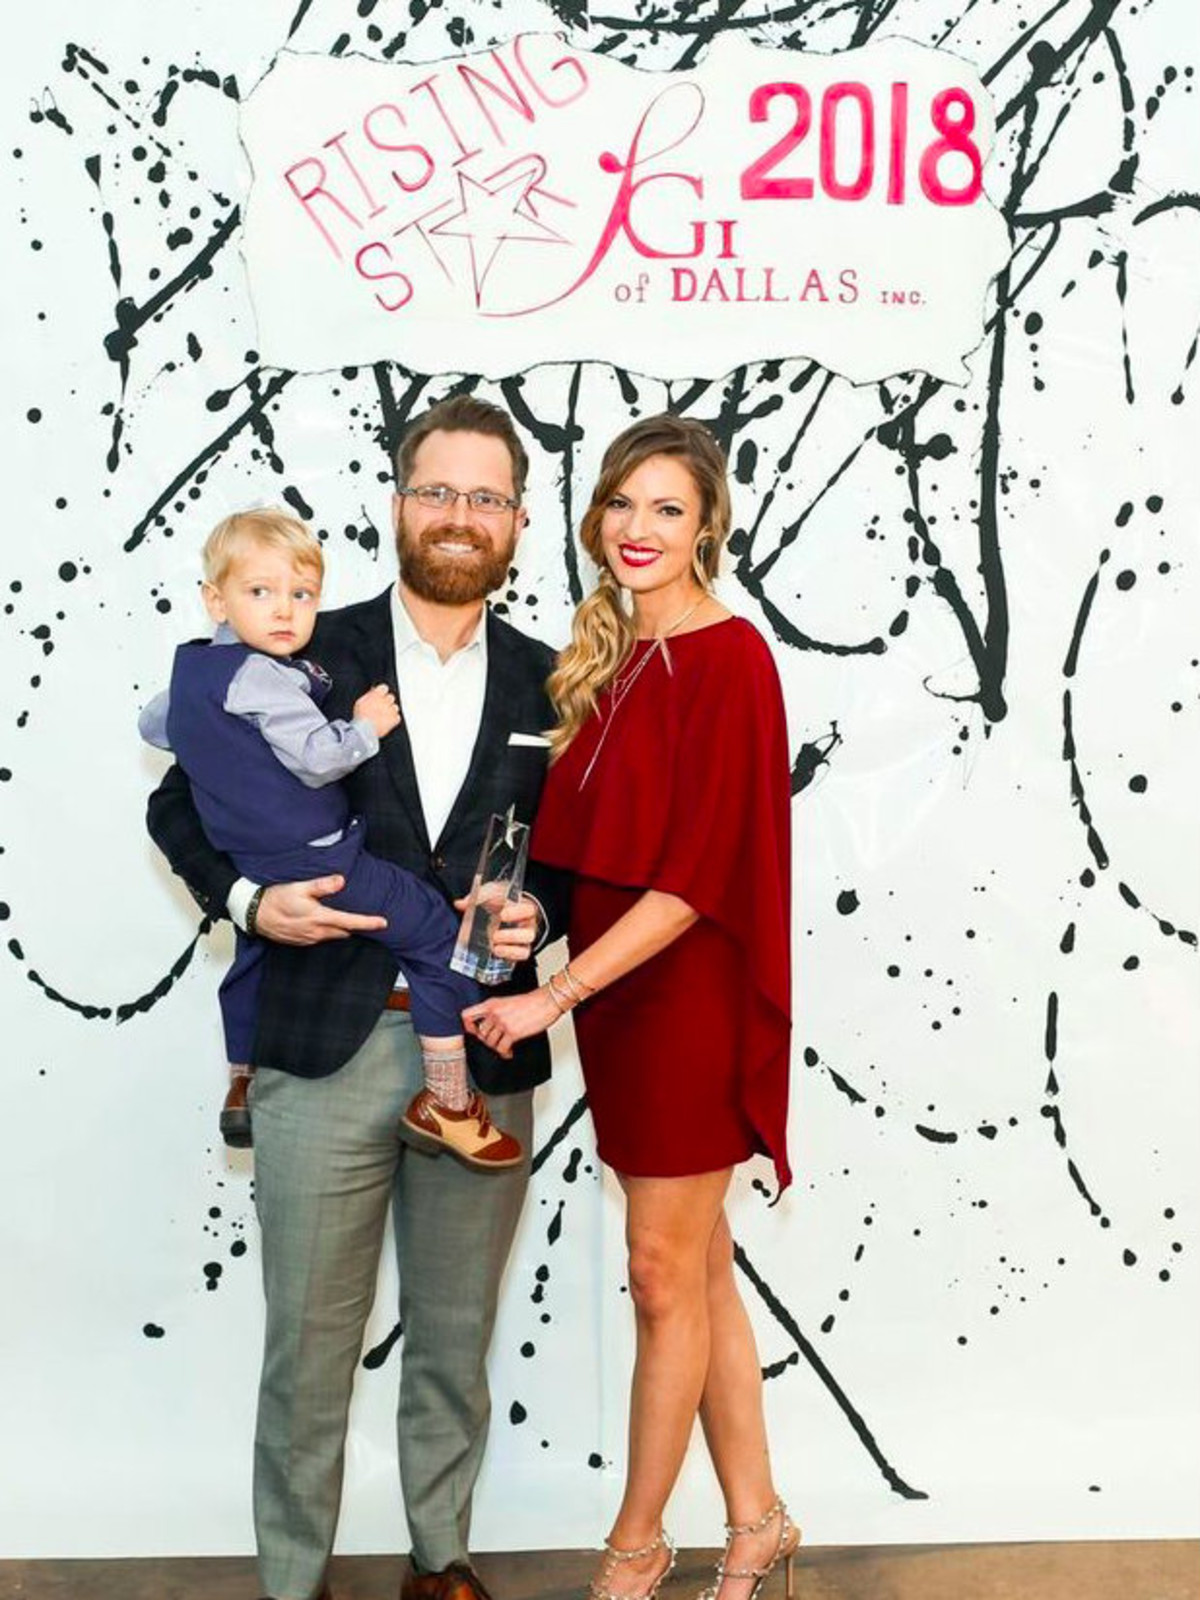 Jason Simmons, Rebekah Allen, and son, Dallas_FGI Rising Star